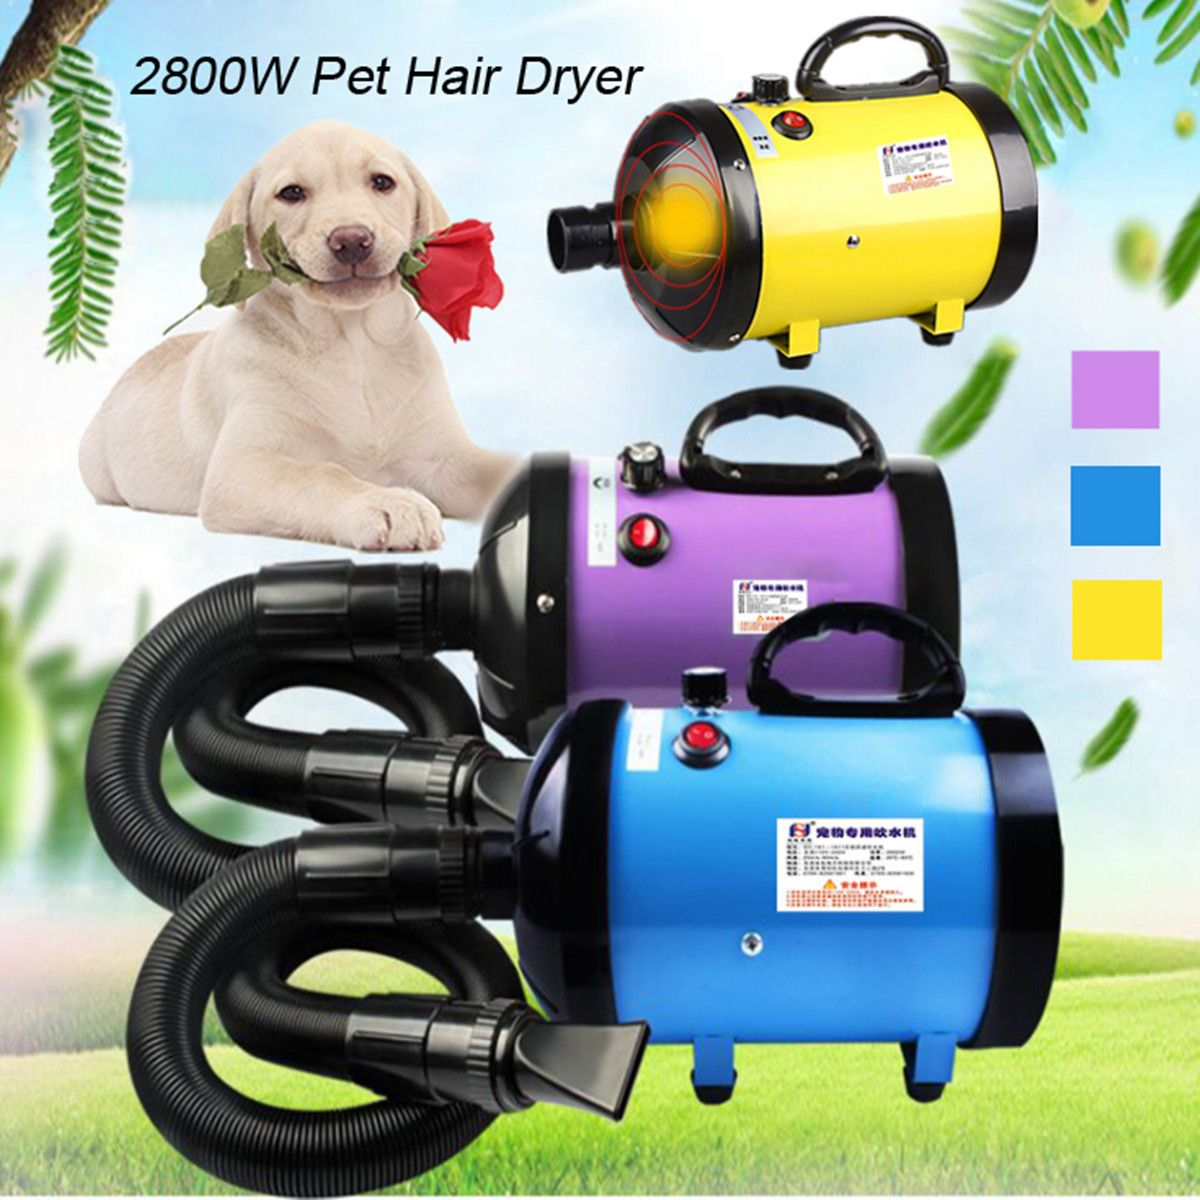 2800W Low Noise Pet Hair Dryer Dog Cat Grooming Dryer Heater Adjustable Blower 220V~240V High Quality